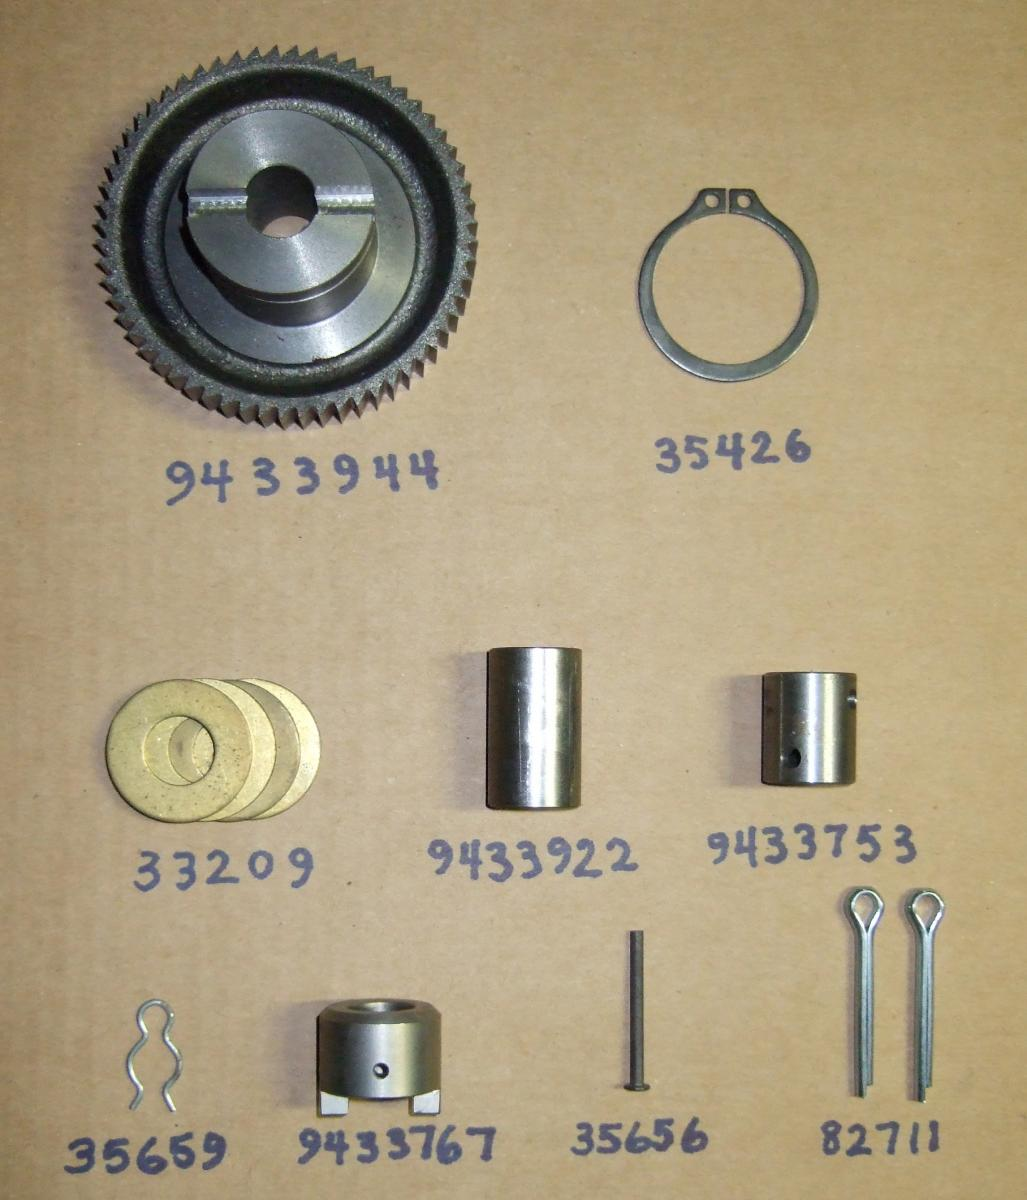 1clutch-assembly-parts1.jpg